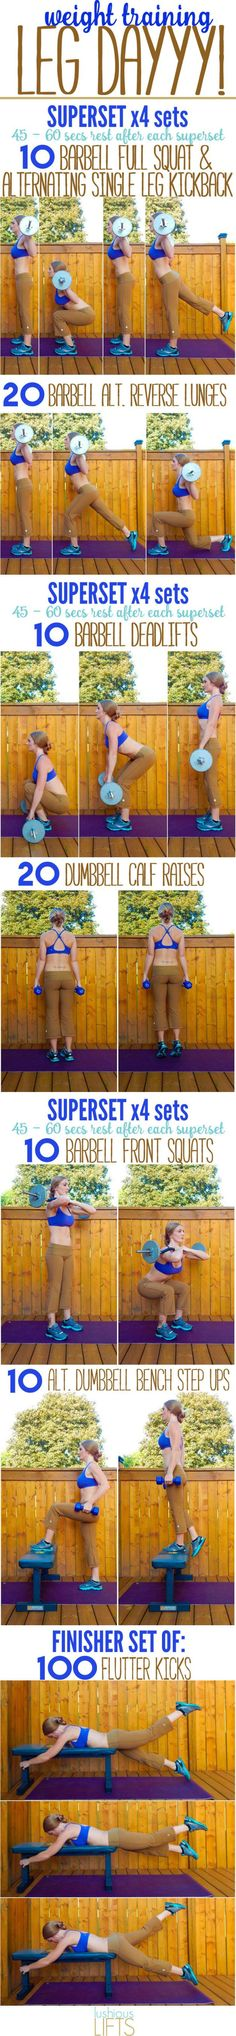 Hello Leg Dayyy!!! Work your entire lower body with this #WeightTraining #Workout} || lushiouslifts.com